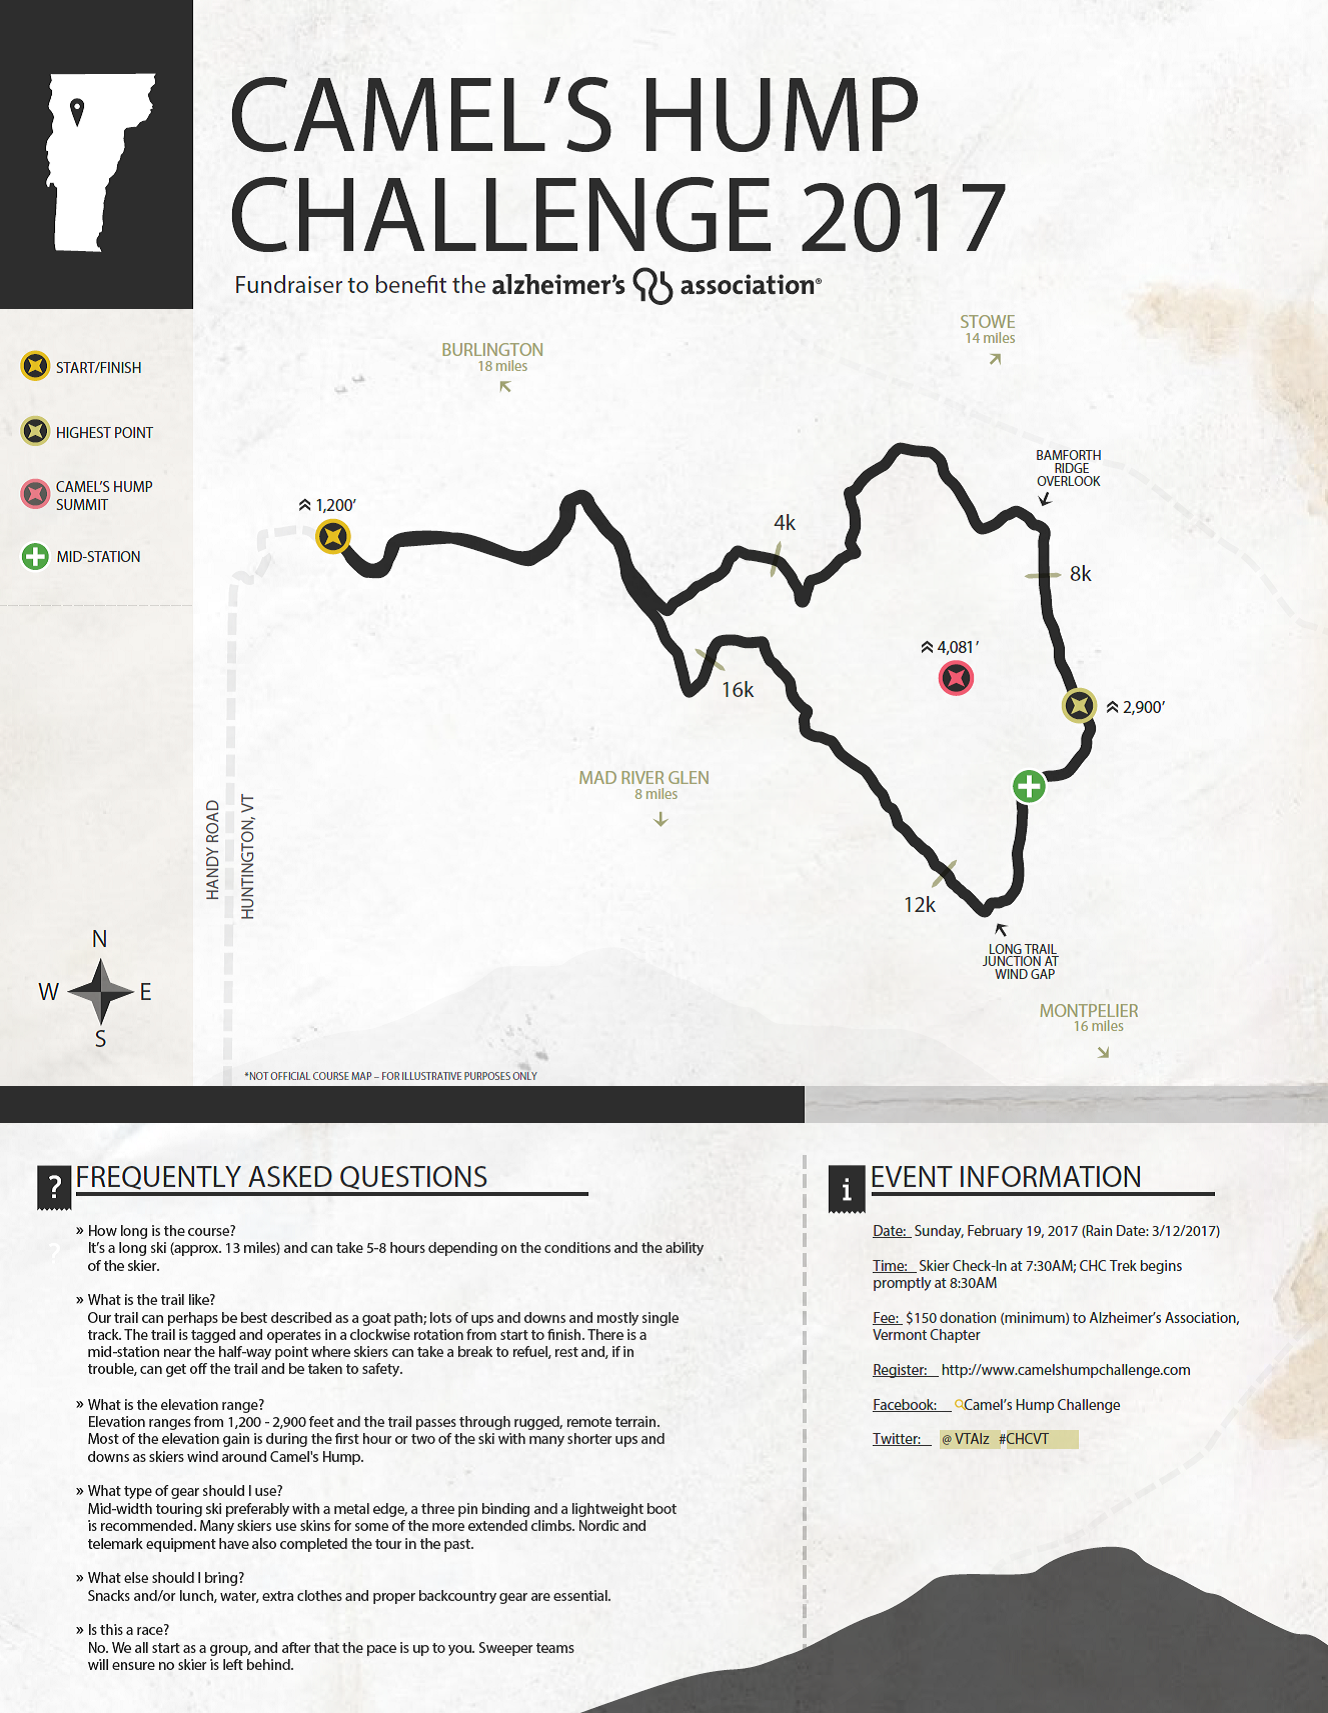 2017 CHC Camel's Hump Challenge map picture